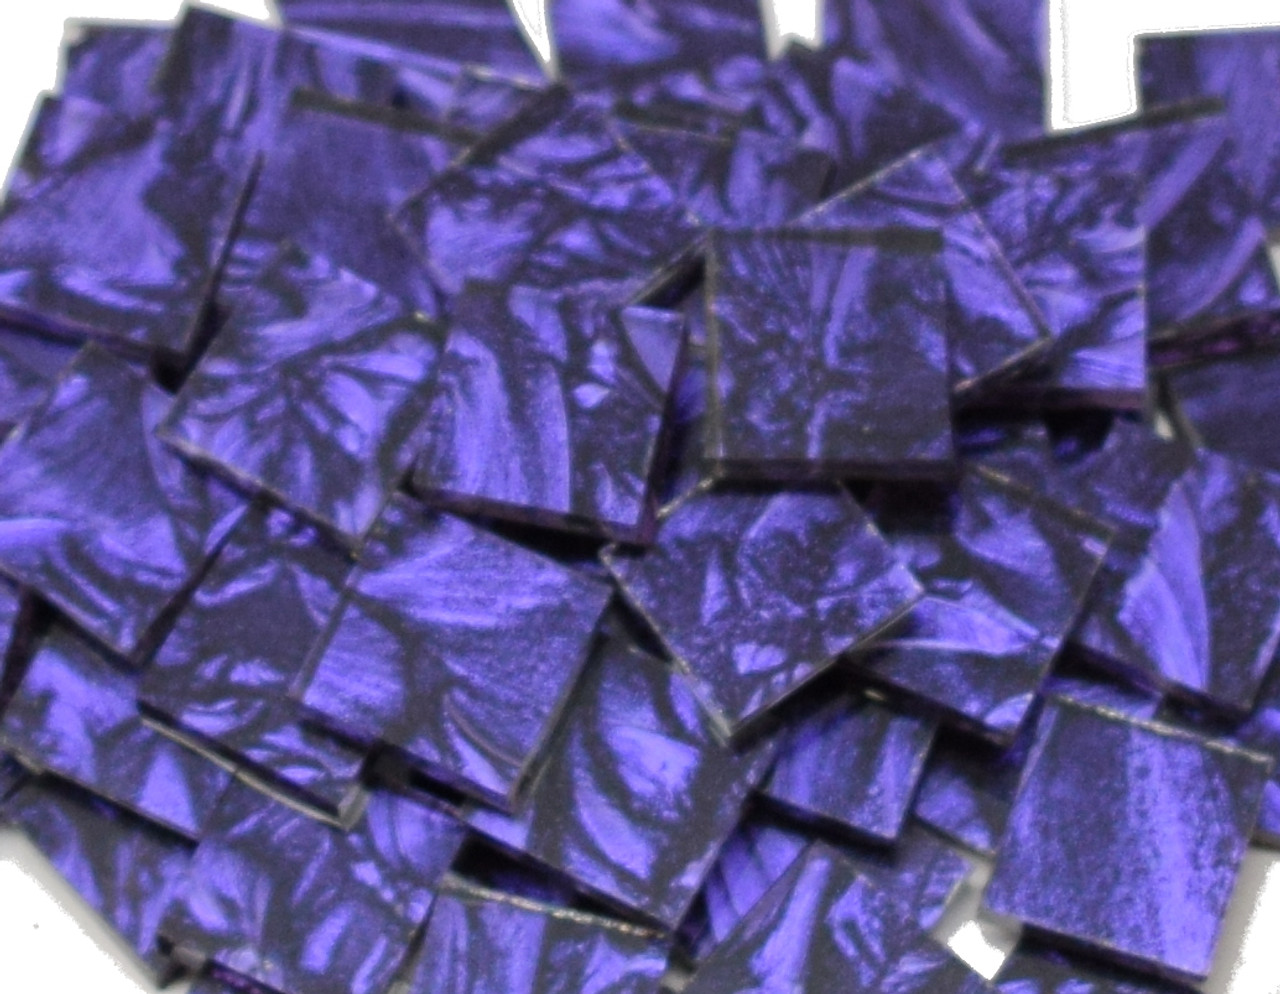 Violet Van Gogh Stained Glass Mosaic Tiles